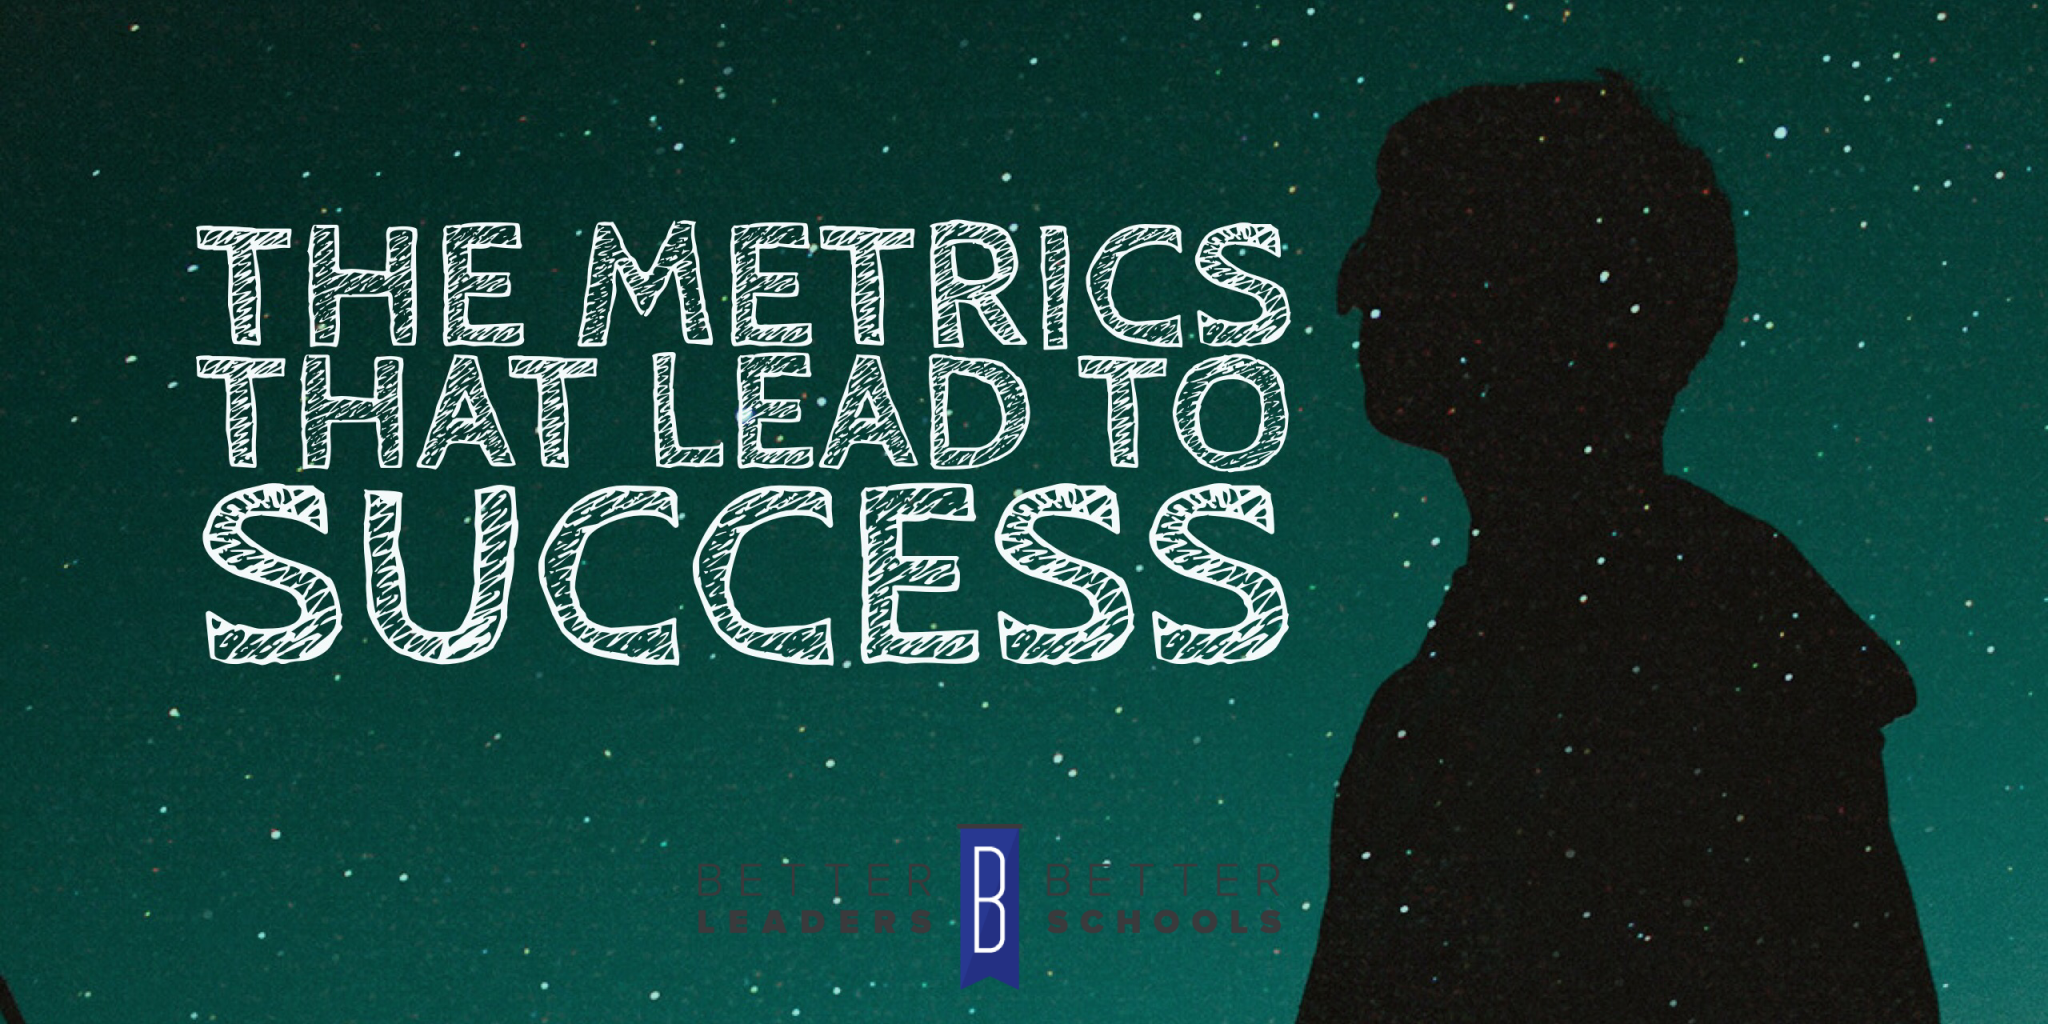 philip lanoue's success metrics